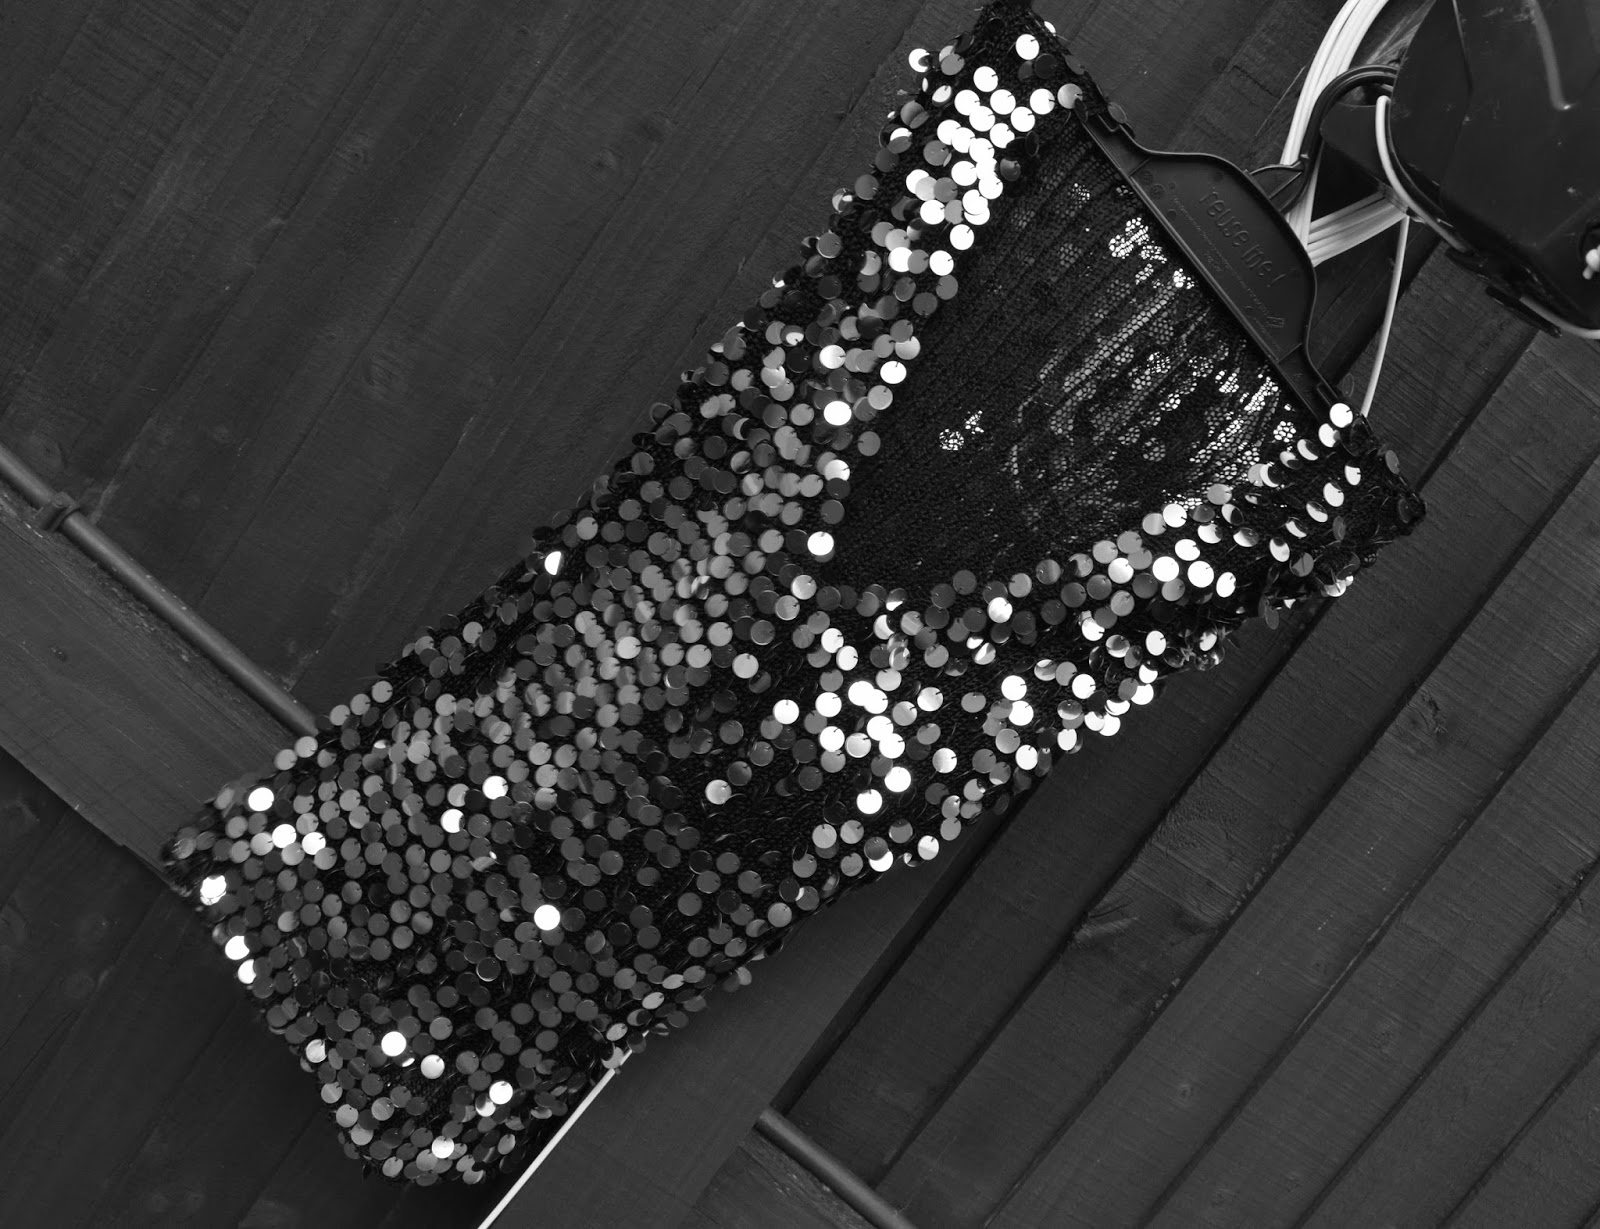 Upcycled Sparkly Peg Bag: Recycling And Reusing